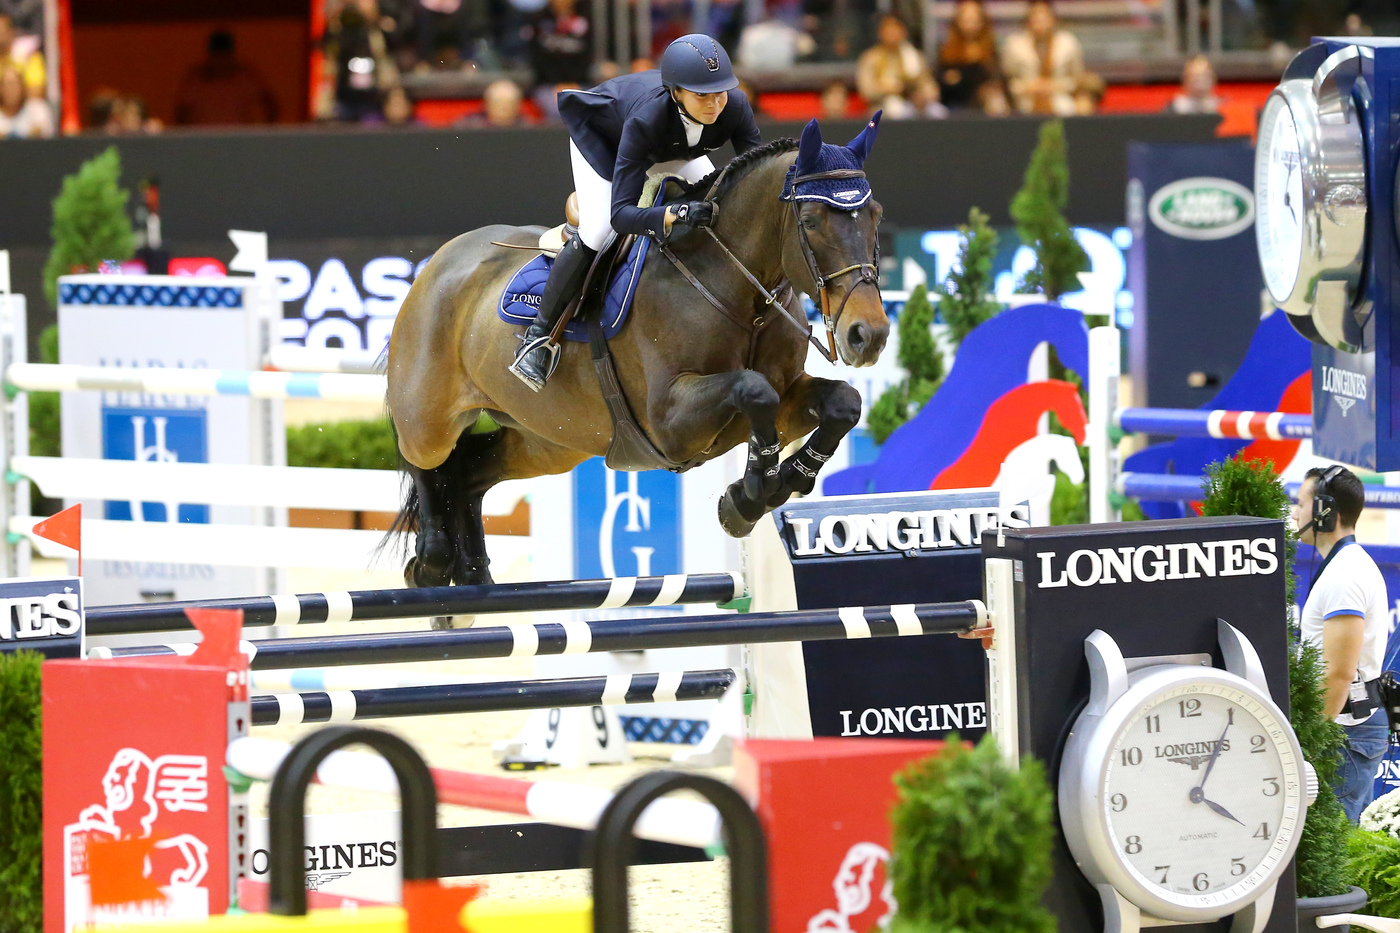 Longines Show Jumping Event: Longines  – Official Timekeeper of Equita'Lyon 1